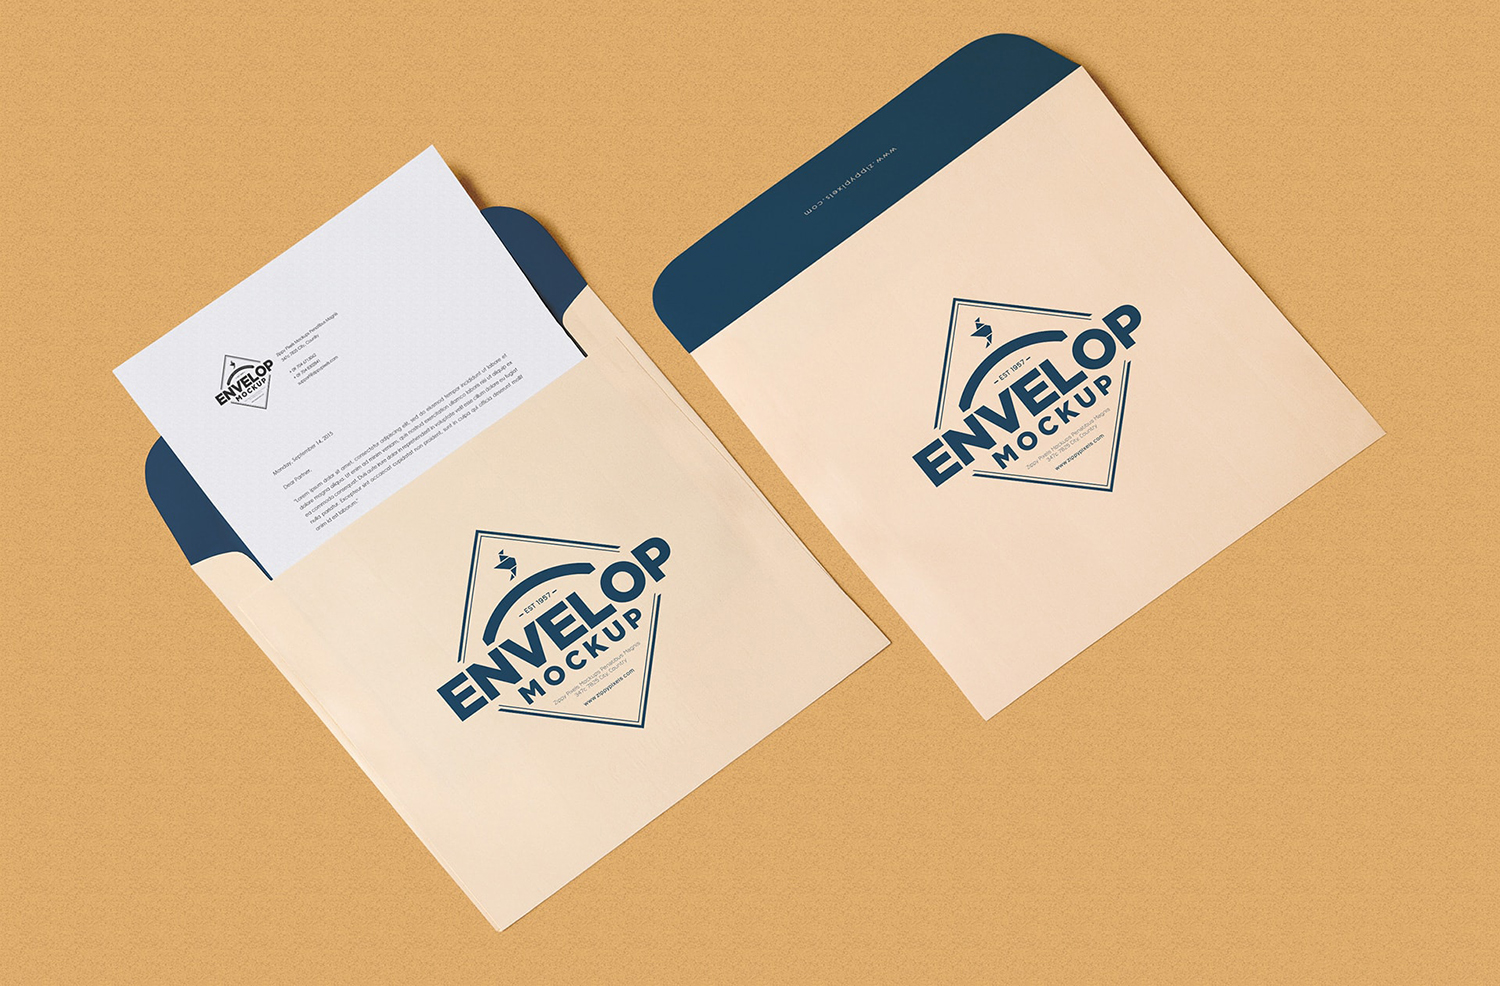 Unique Squared Shaped Envelope PSD Mockup